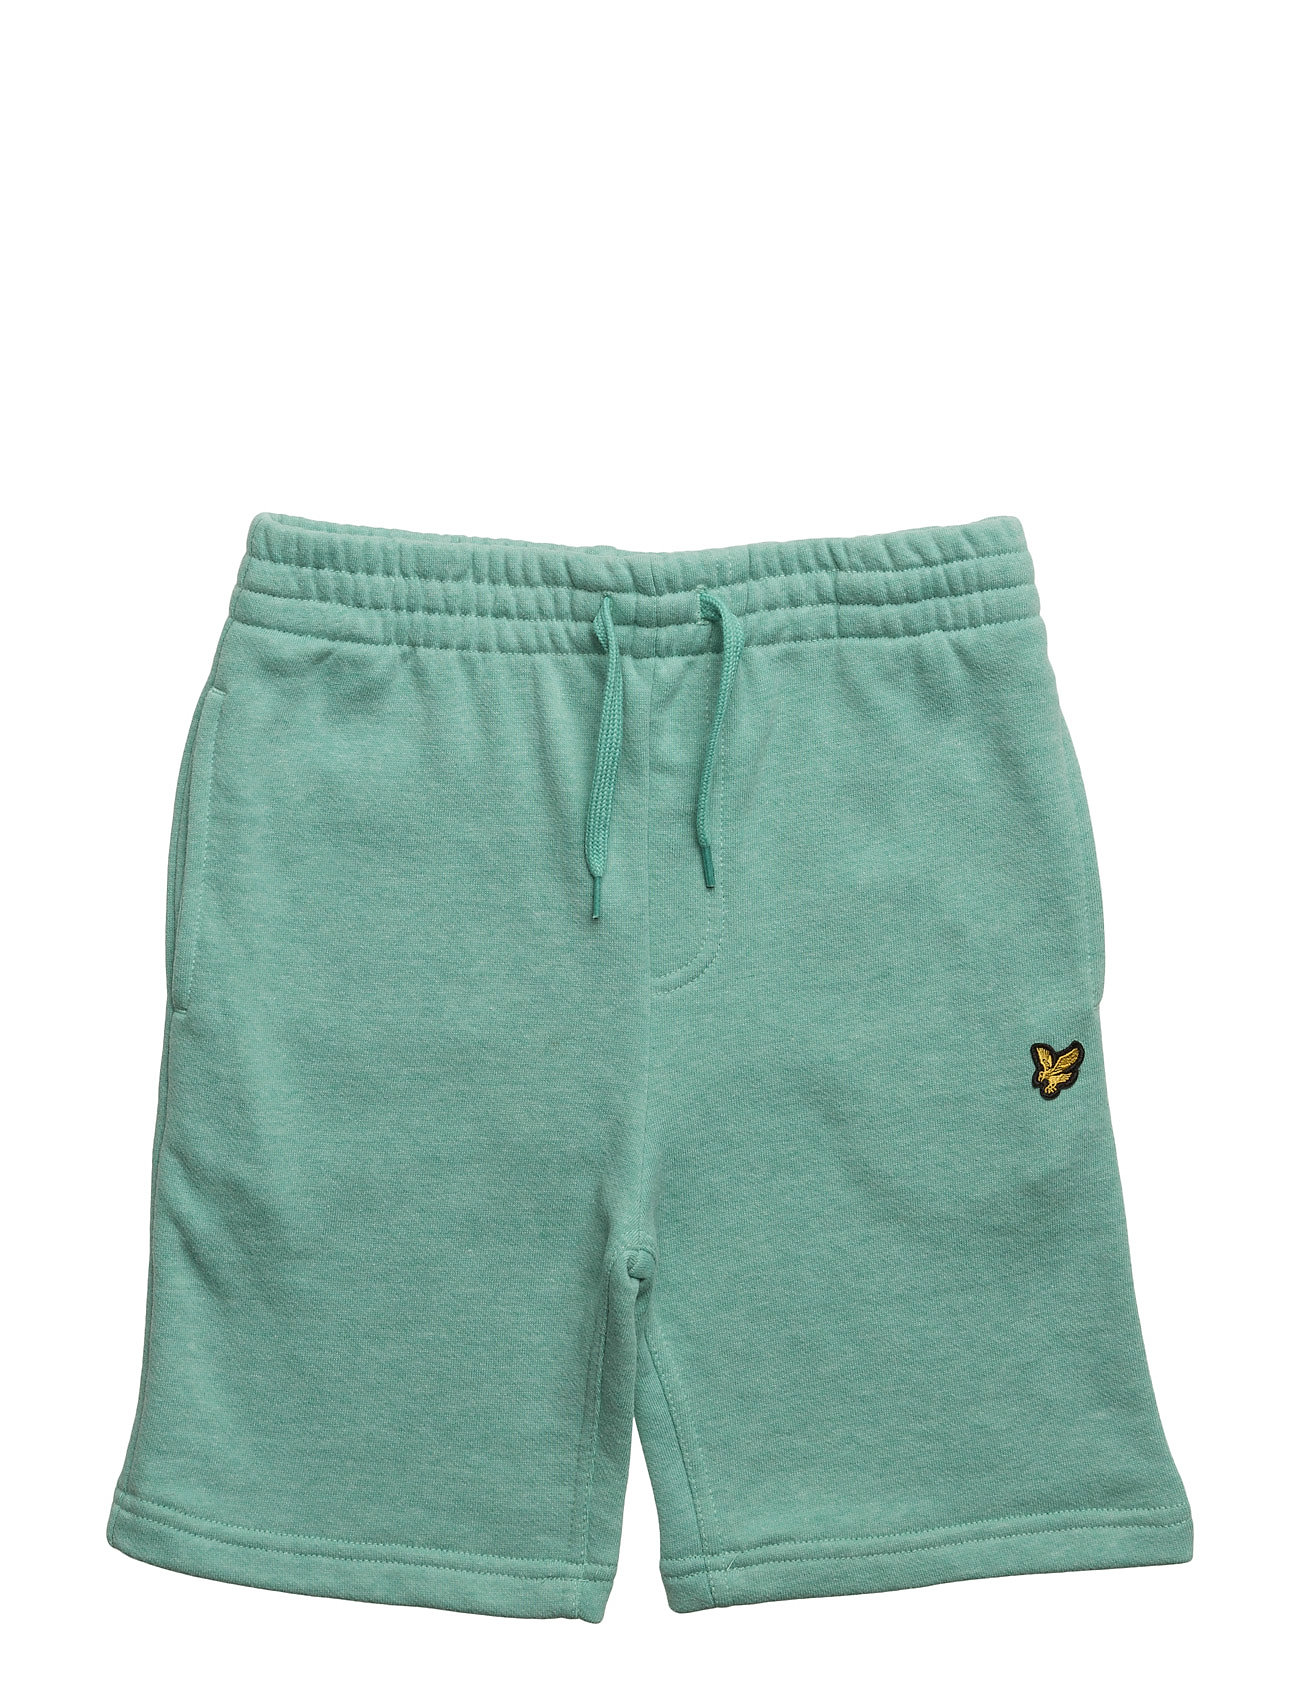 Lyle & Scott French Terry Marl Fleece Short thumbnail